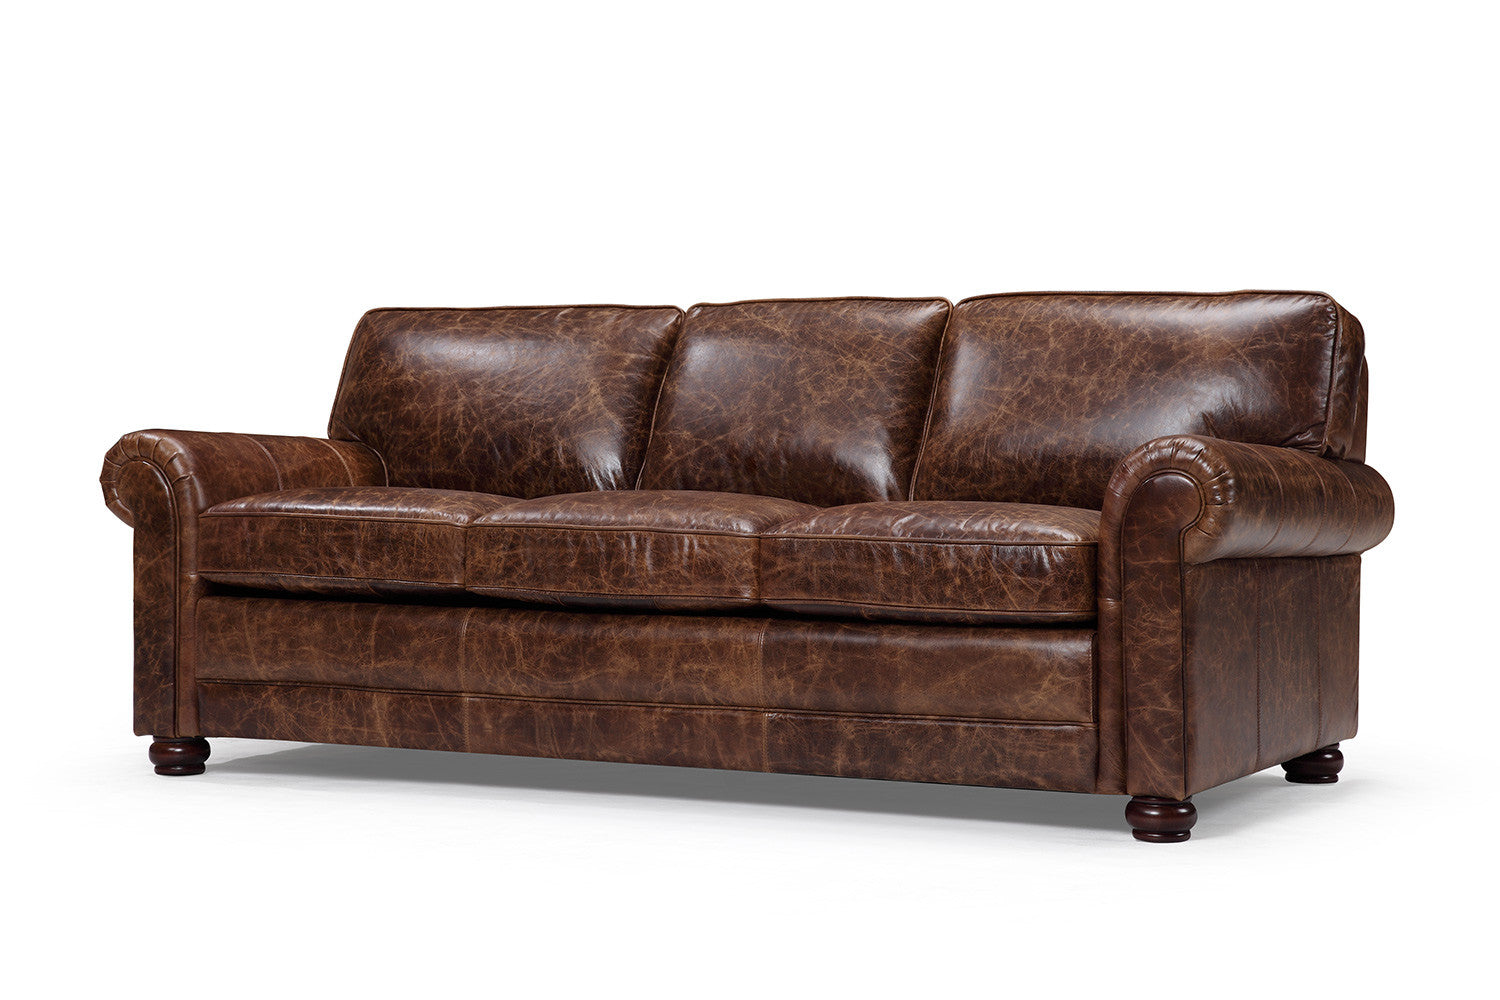 The Montrose Traditional Leather Sofa | Rose and Moore